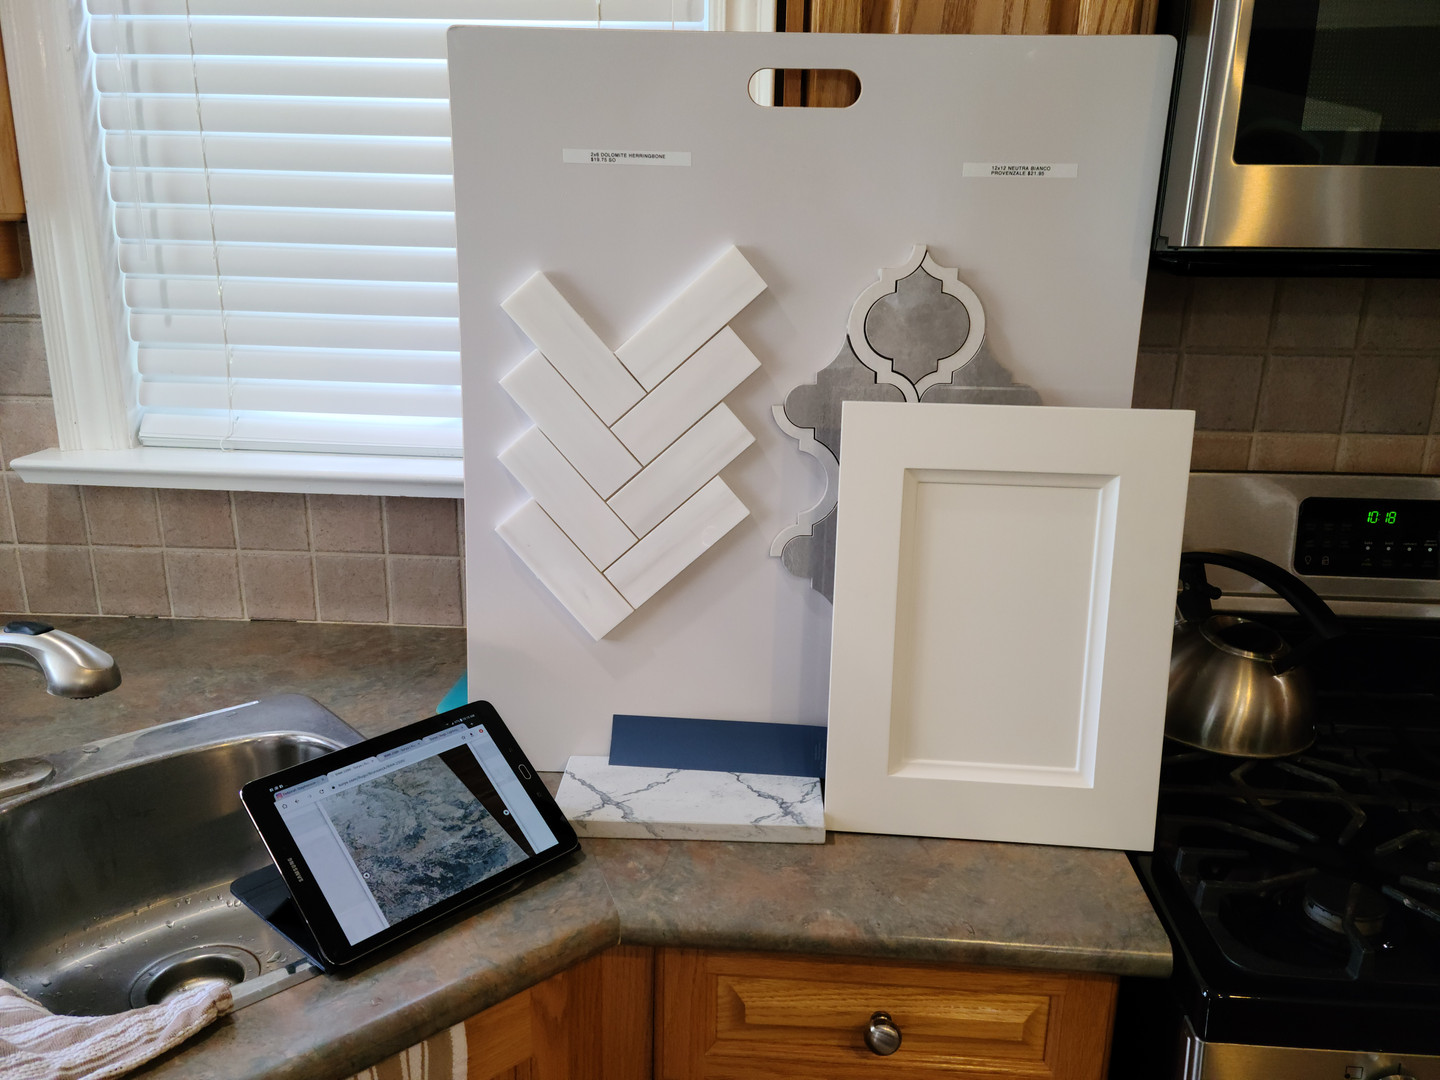 Refacing Kitchen Cabinetry & New Backsplash